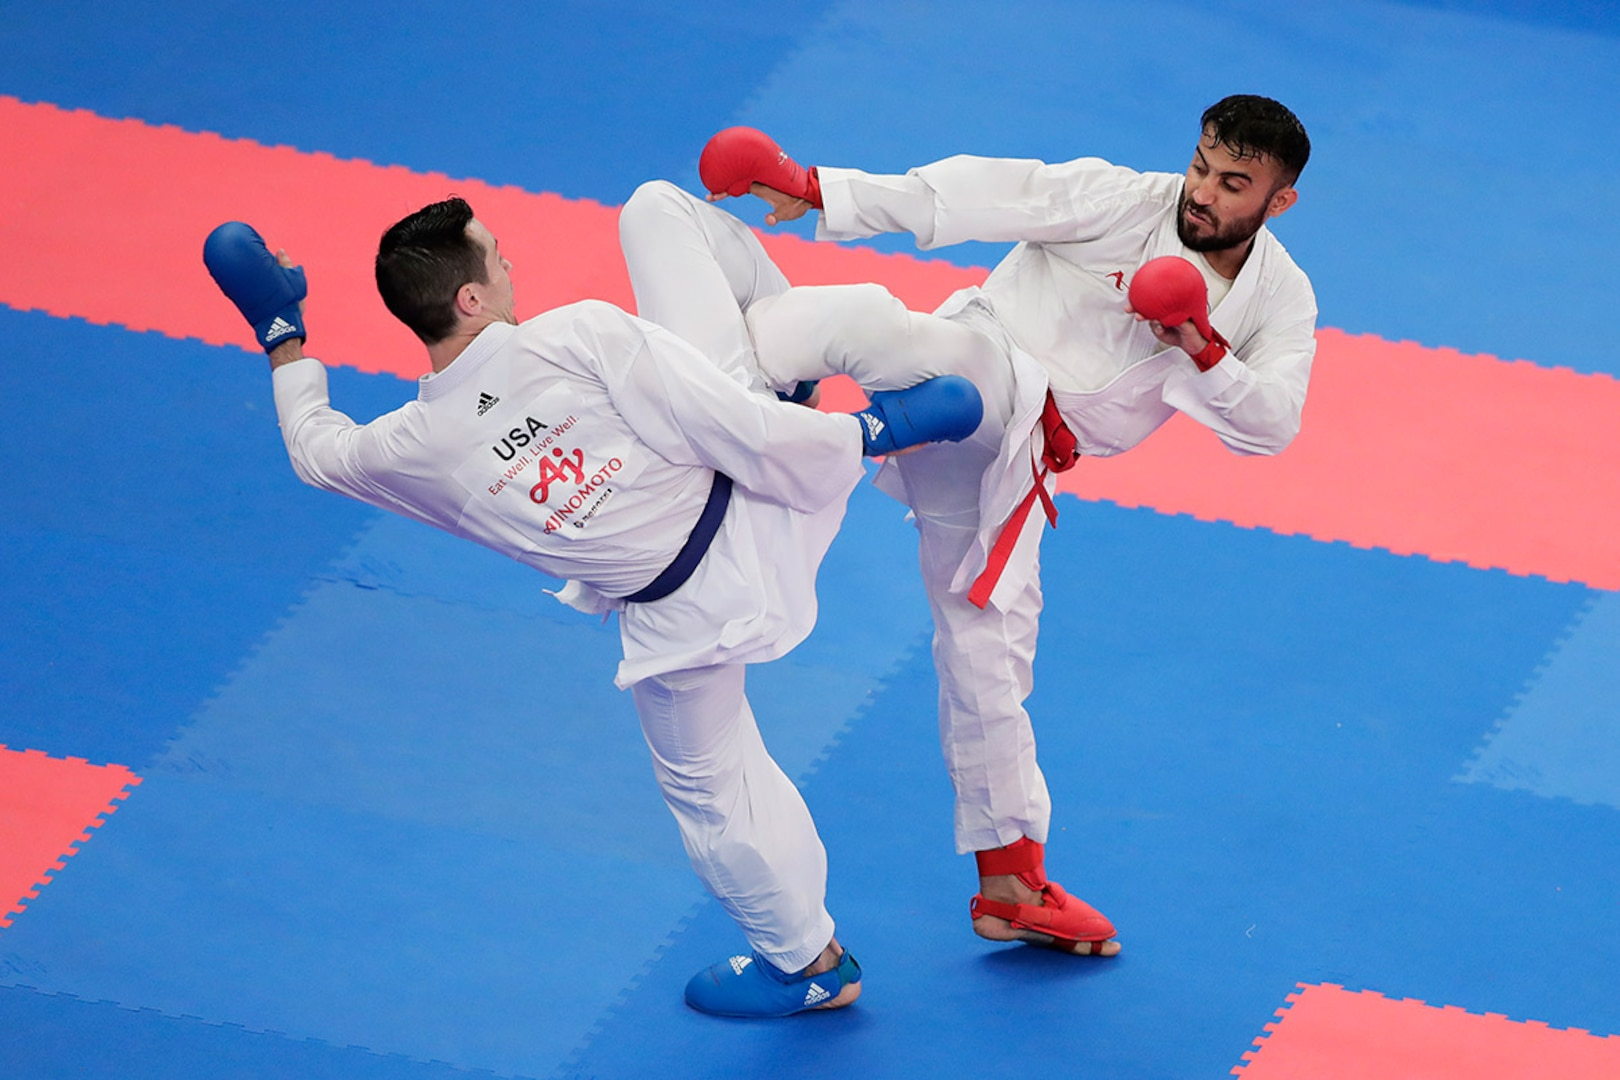 Tom Scott competes in men's kumite at a tournament held at the Nippon Budokan